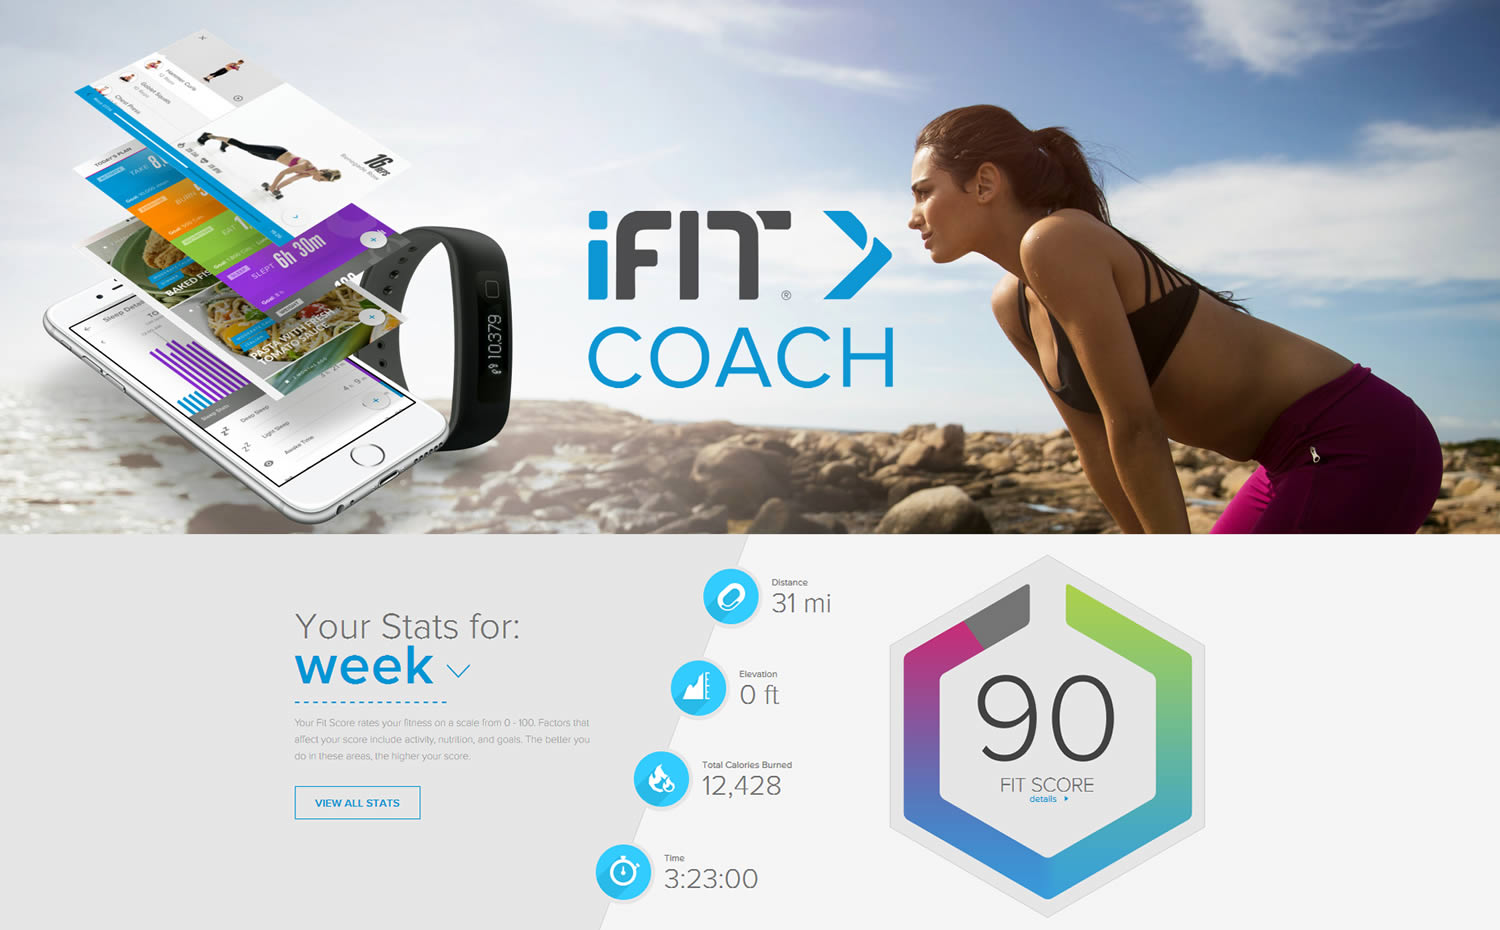 bodycoach/ifit-coach-review-with-vue-for-women-and-men-hero.jpg